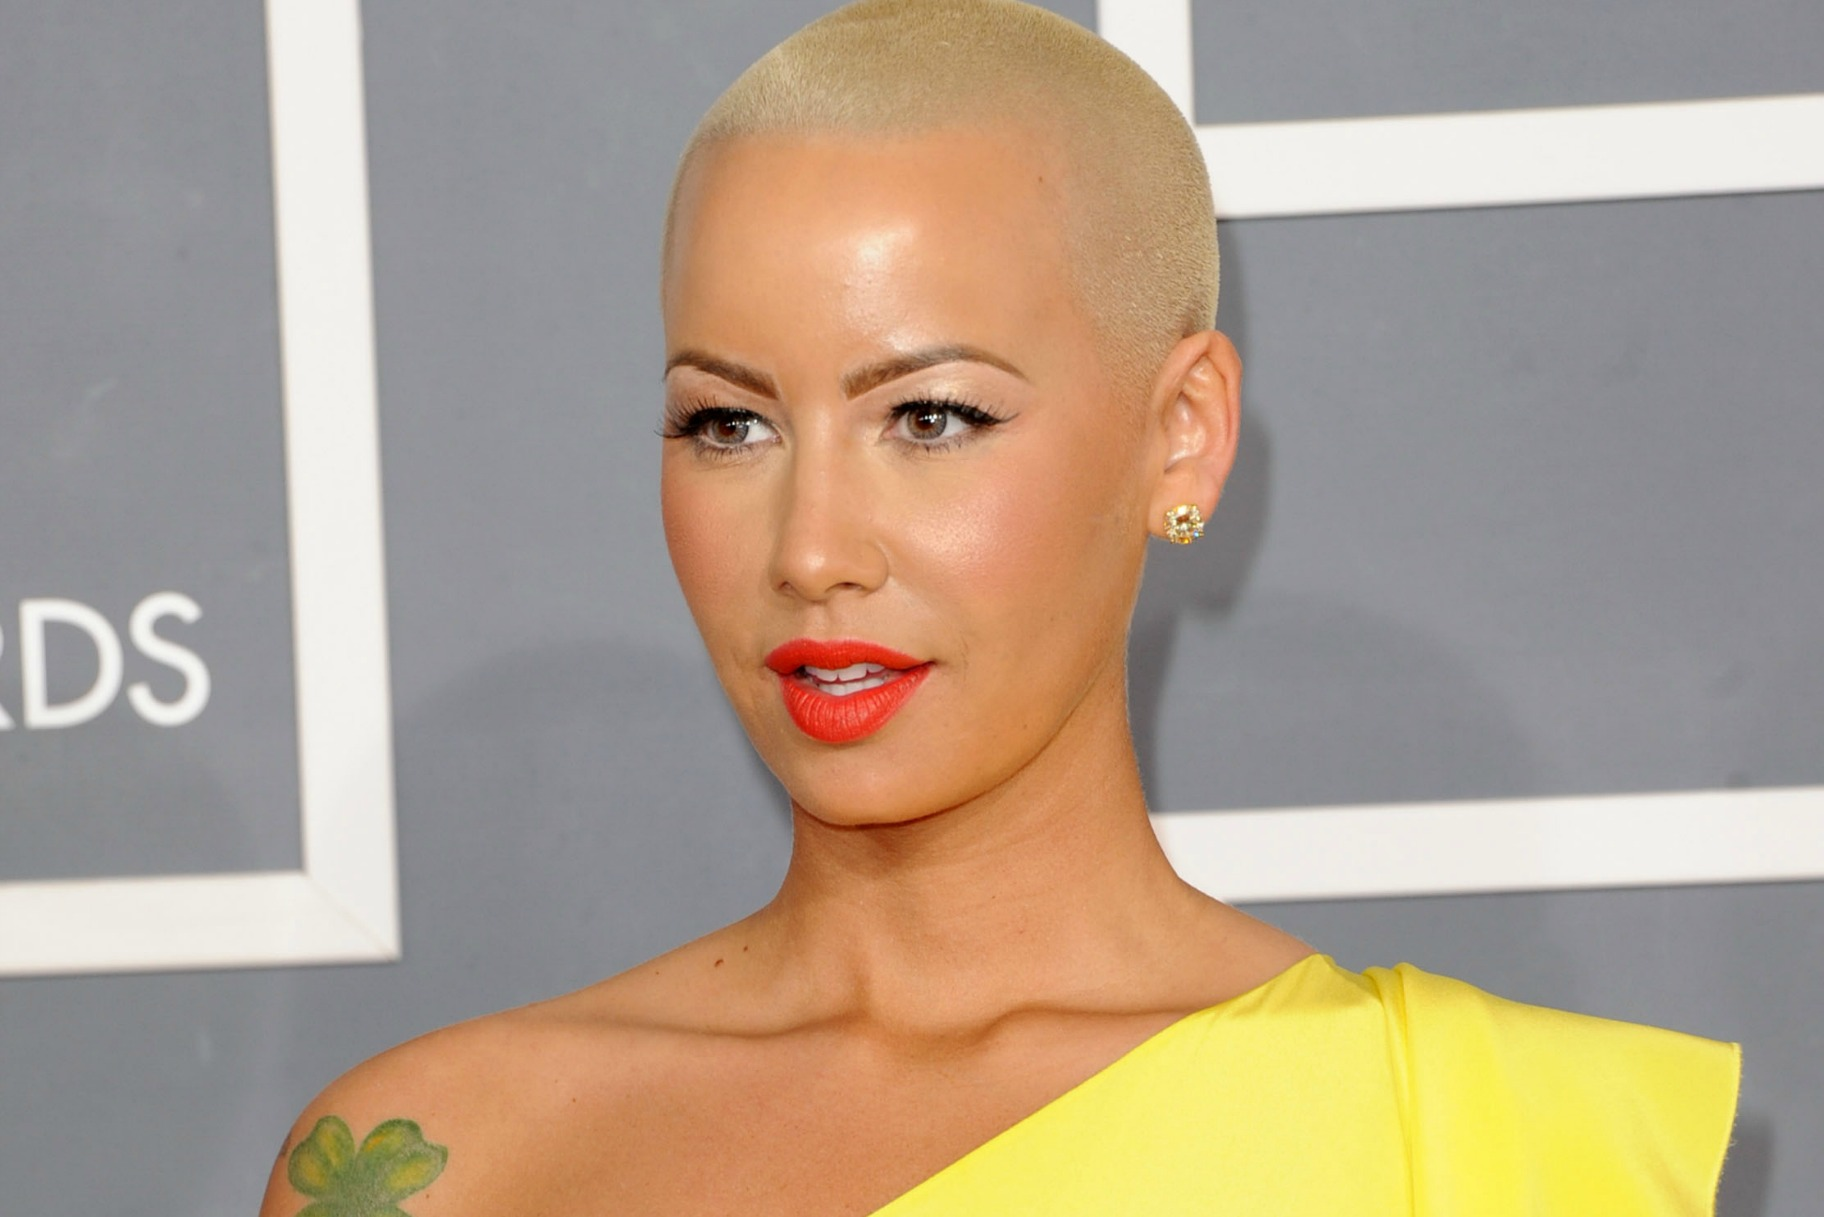 American Model Amber Rose Flashes Her Unshaven Crotch In A Shocking Instagram Picture